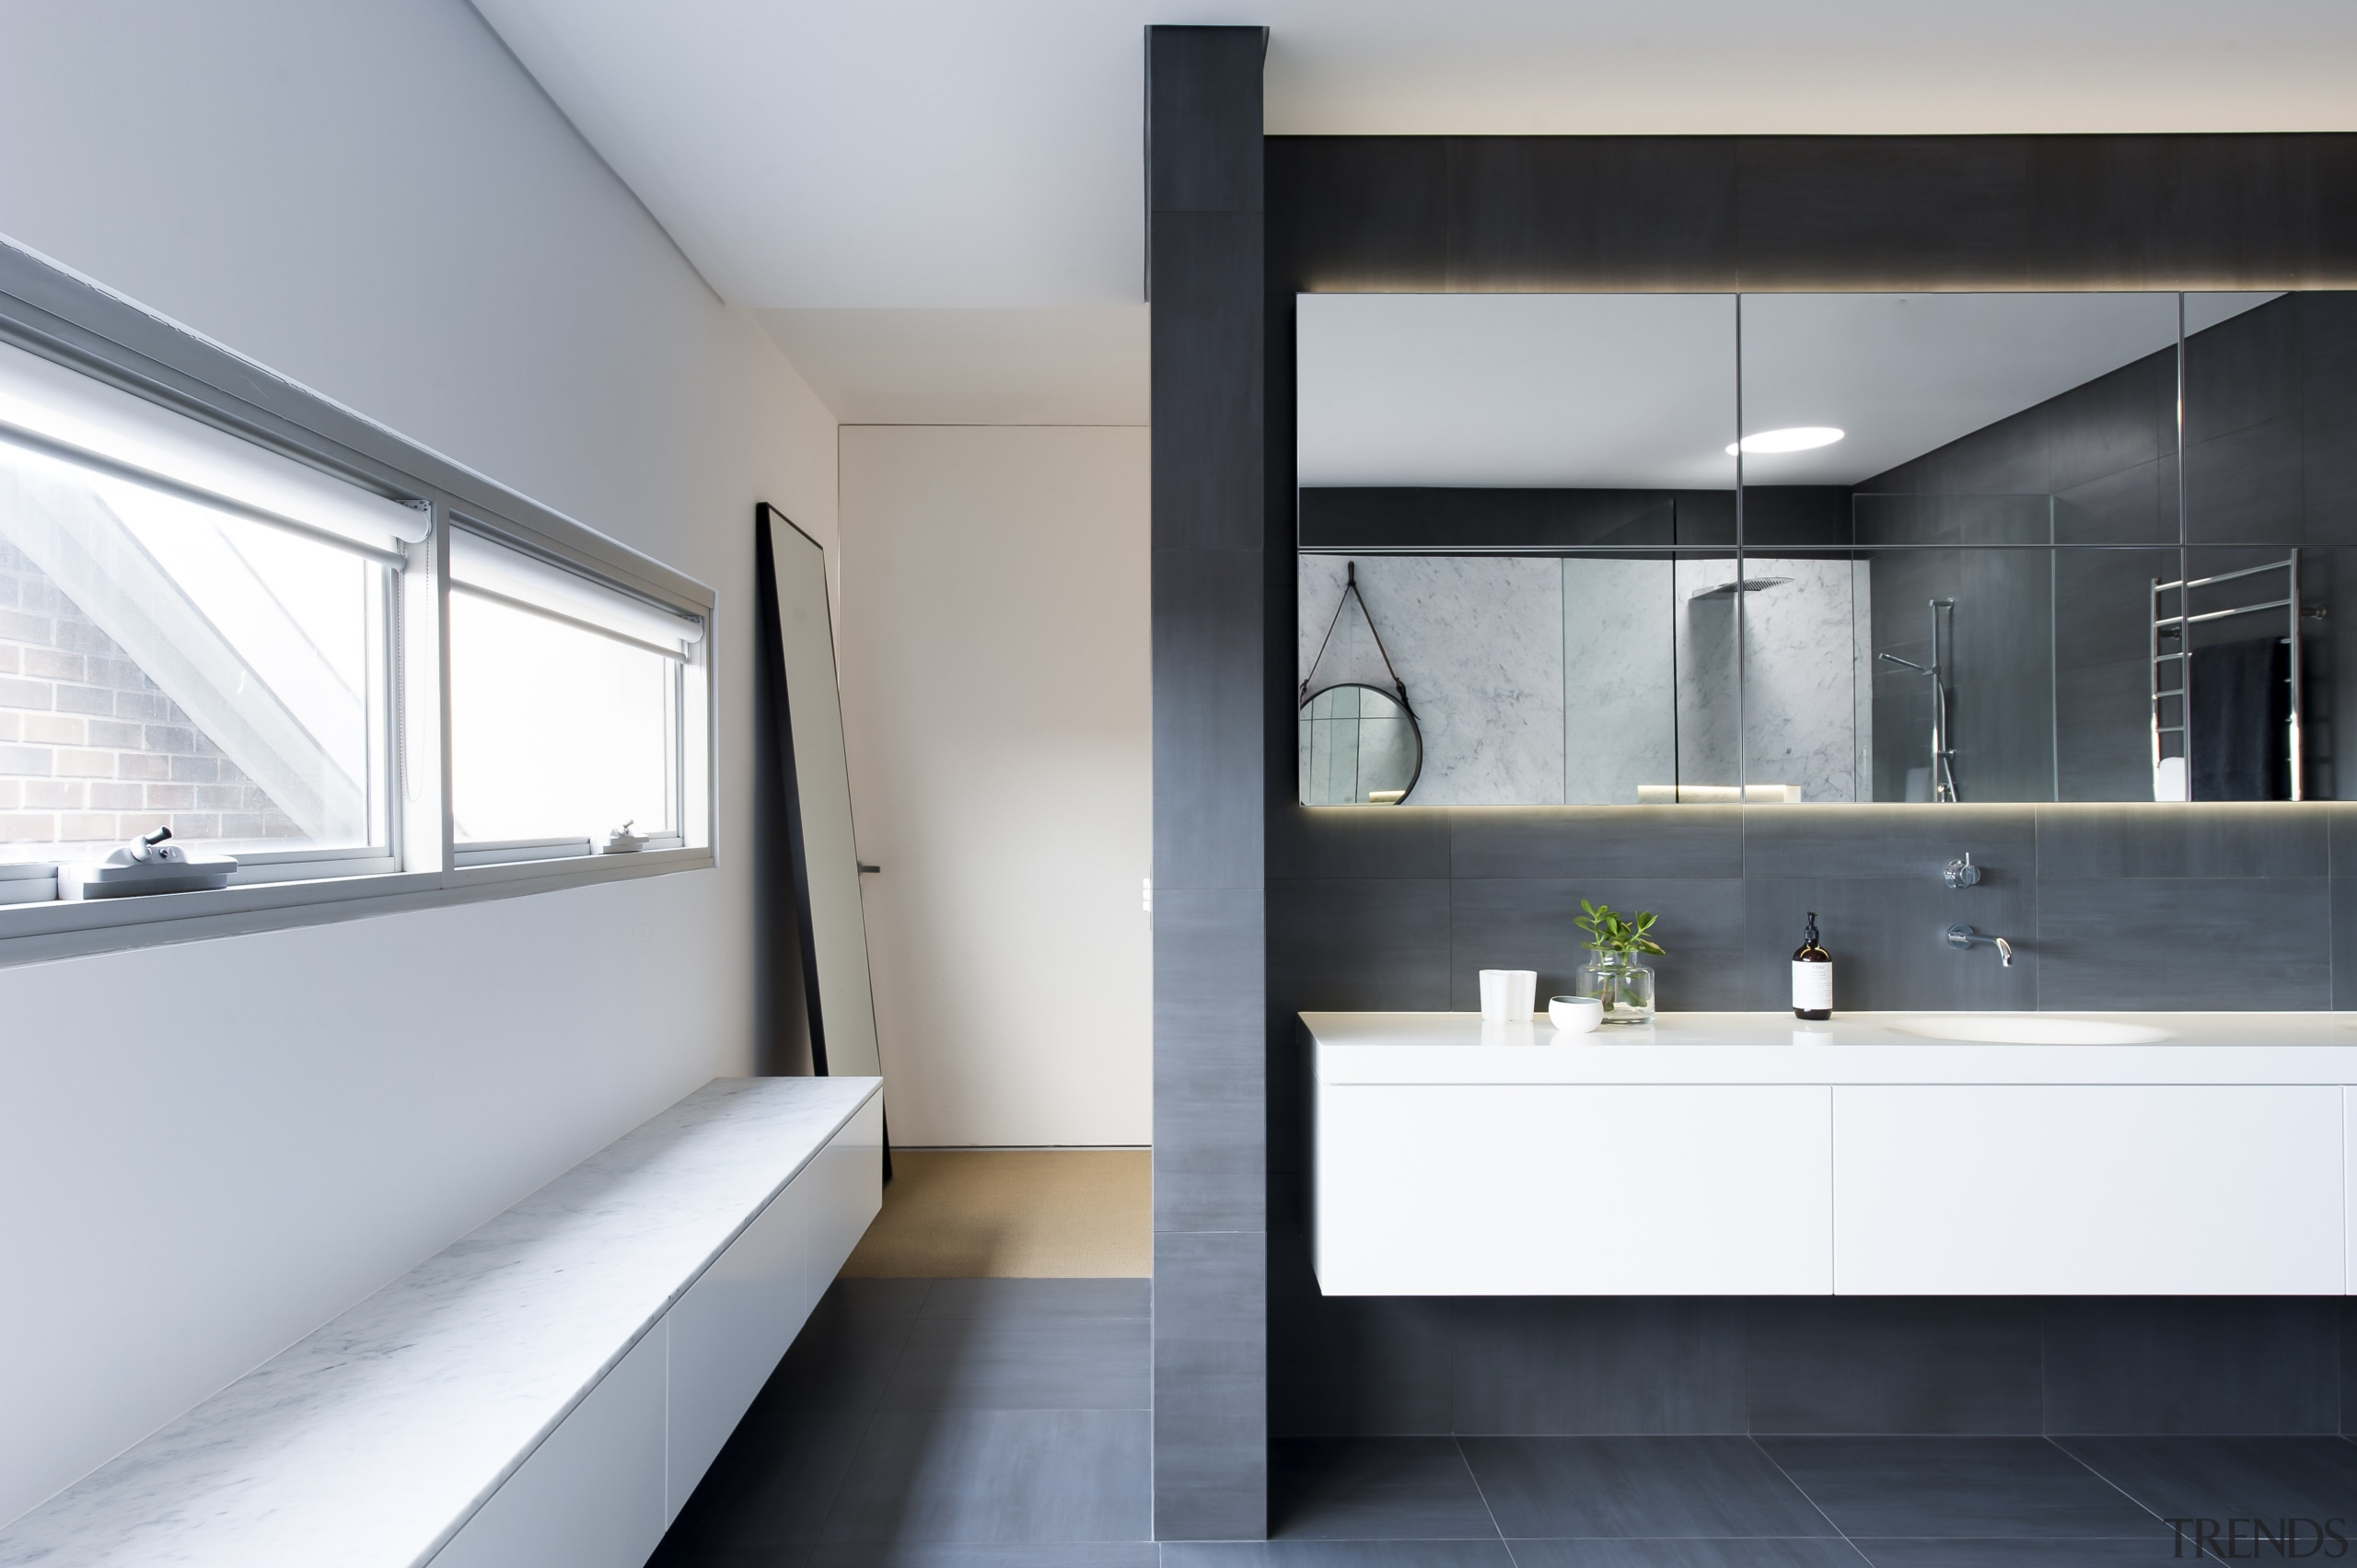 In this bathroom by Minosa, the hanging wall architecture, bathroom, house, interior design, product design, room, sink, gray